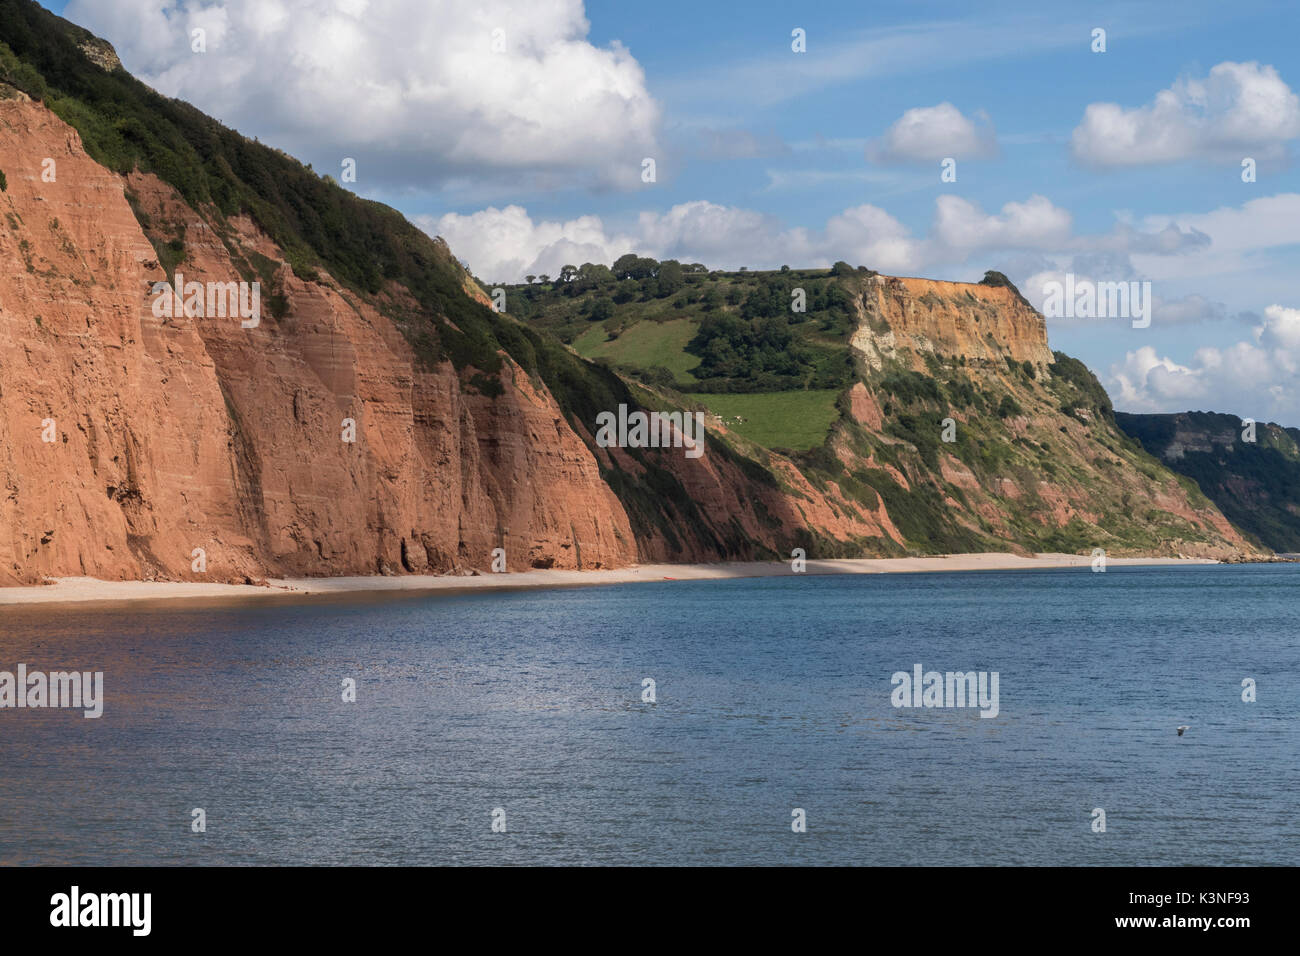 Red sandstone triassic cliffs at Salcombe mouth, Sidmouth, Devon. - Stock Image